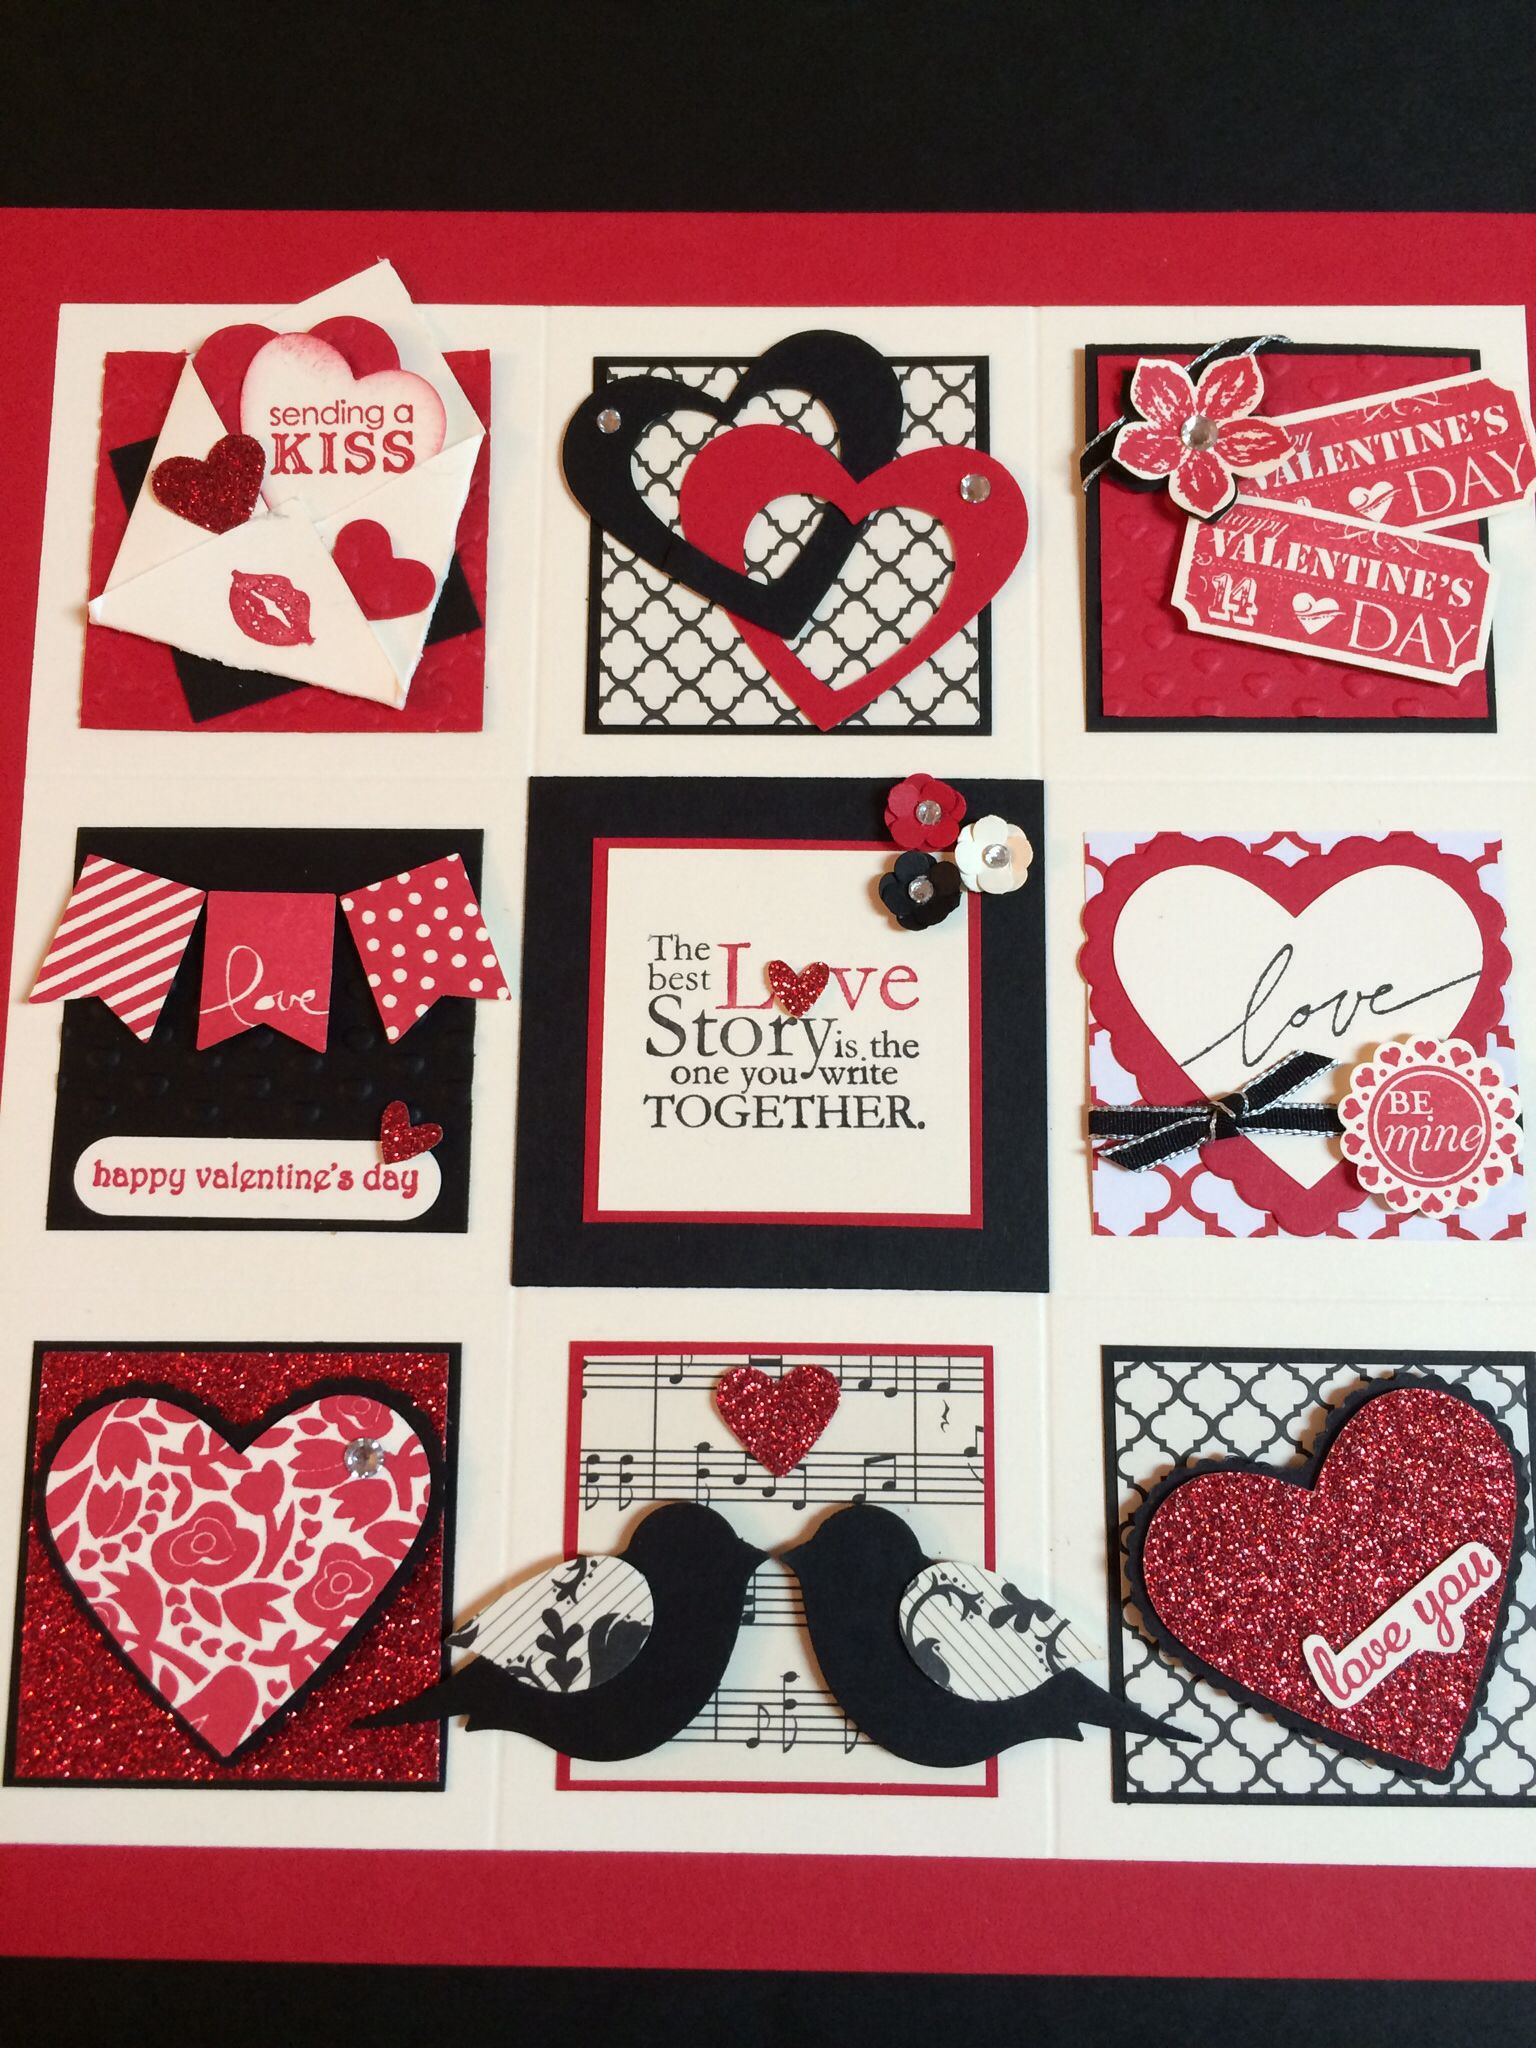 Stampin' Up Valentine Sampler made this during a class